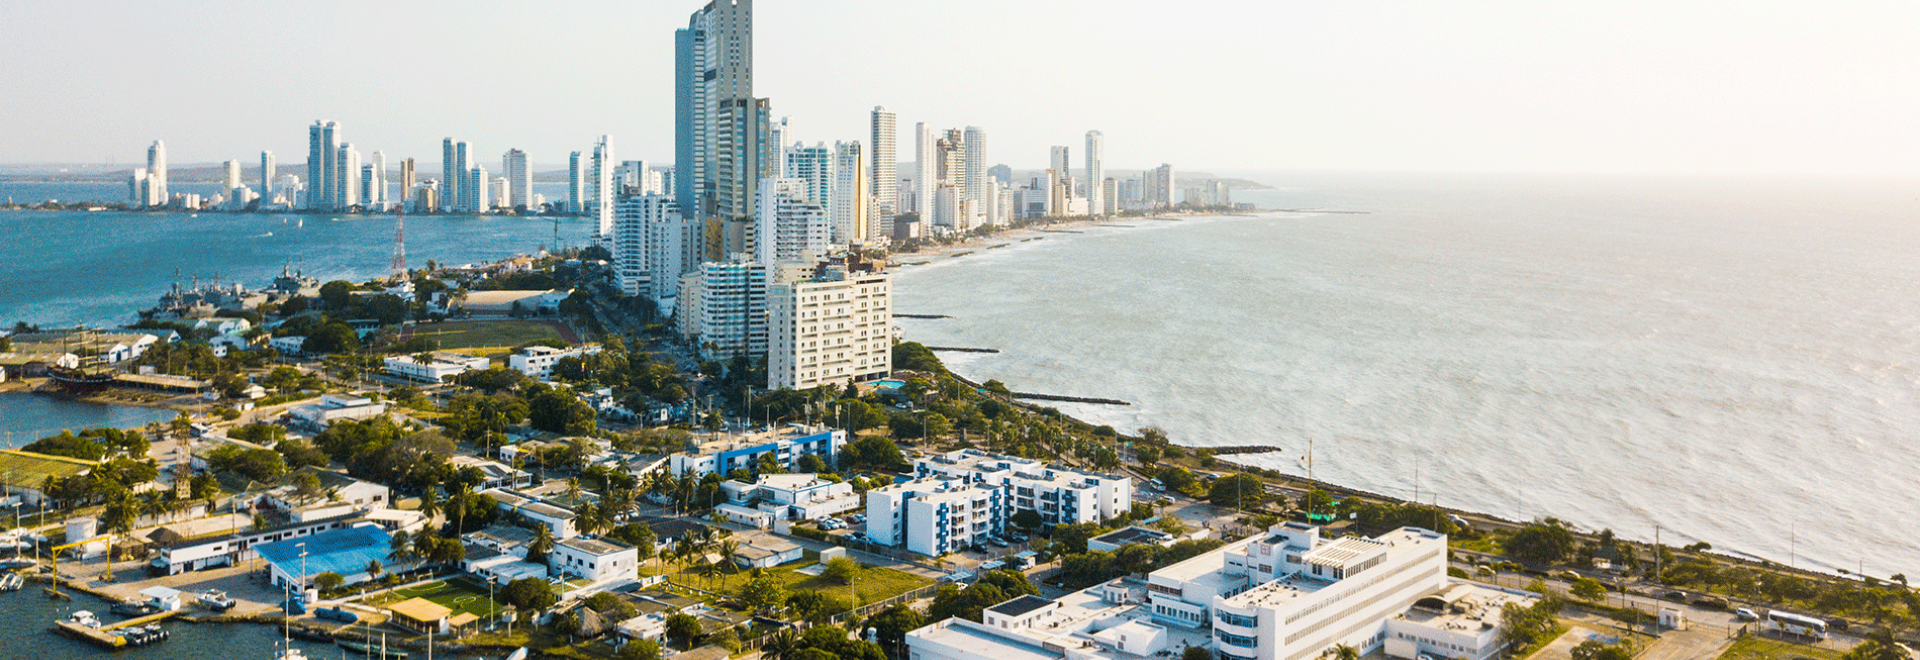 Colombia Offers Close-to-Home Trade and Investment Opportunities for U.S. Companies